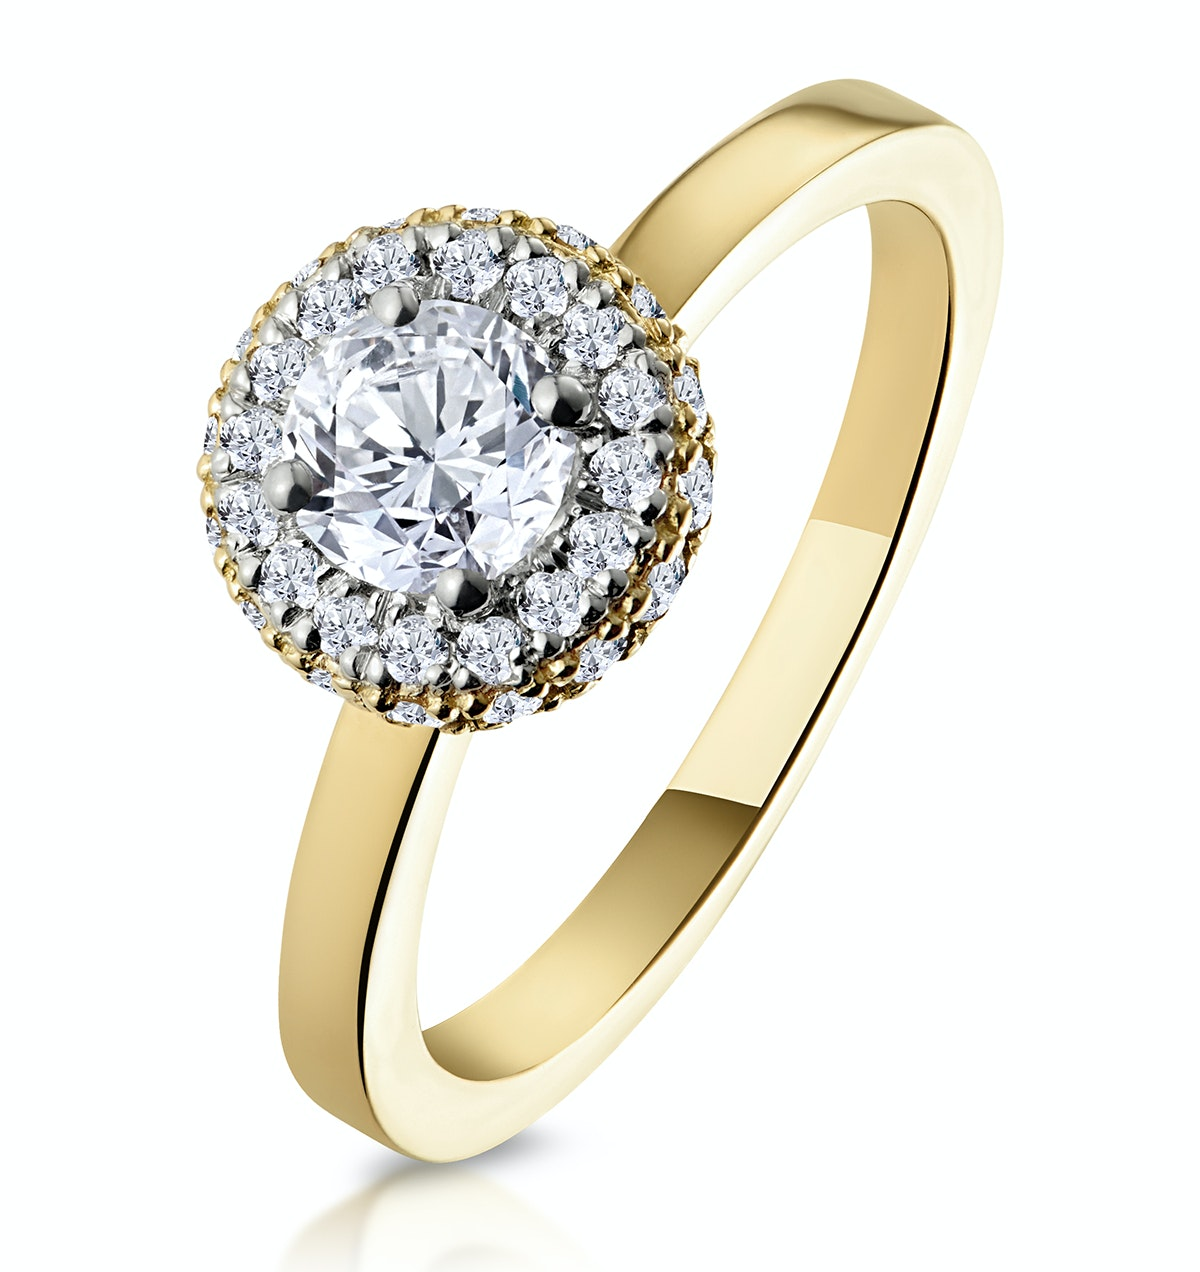 Eleanor GIA Diamond Halo Engagement Ring in 18K Gold 0.65ct G/SI1